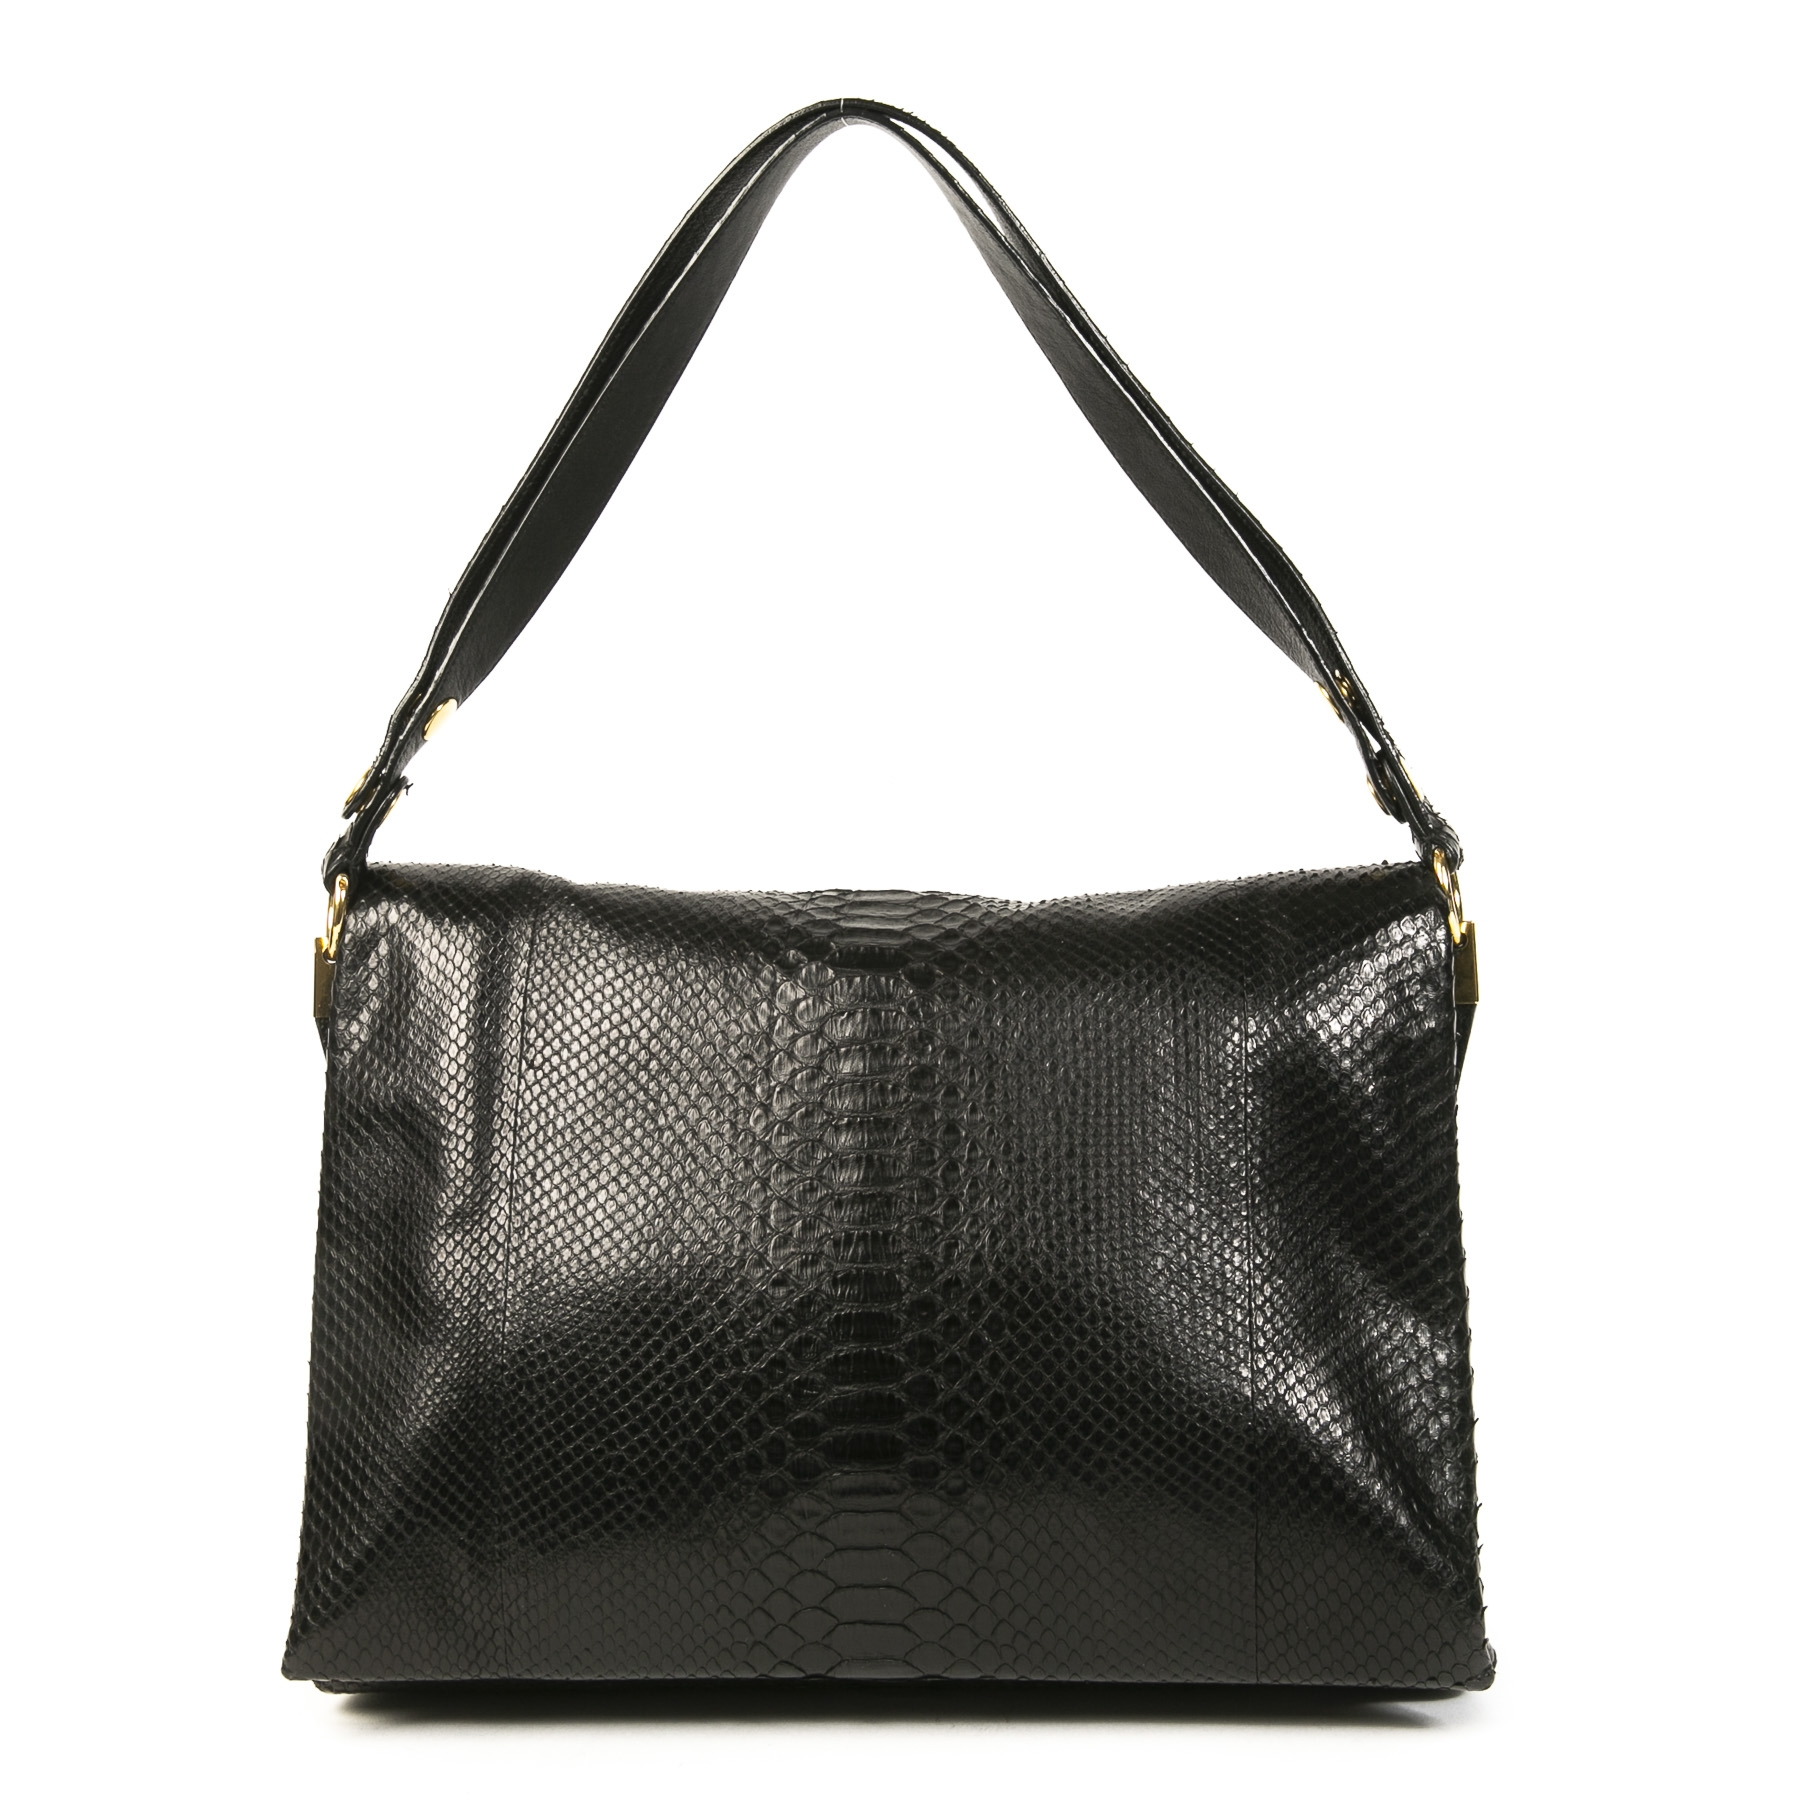 Authentic second-hand vintage Celine Python Black Blade Bag buy online webshop LabelLOV